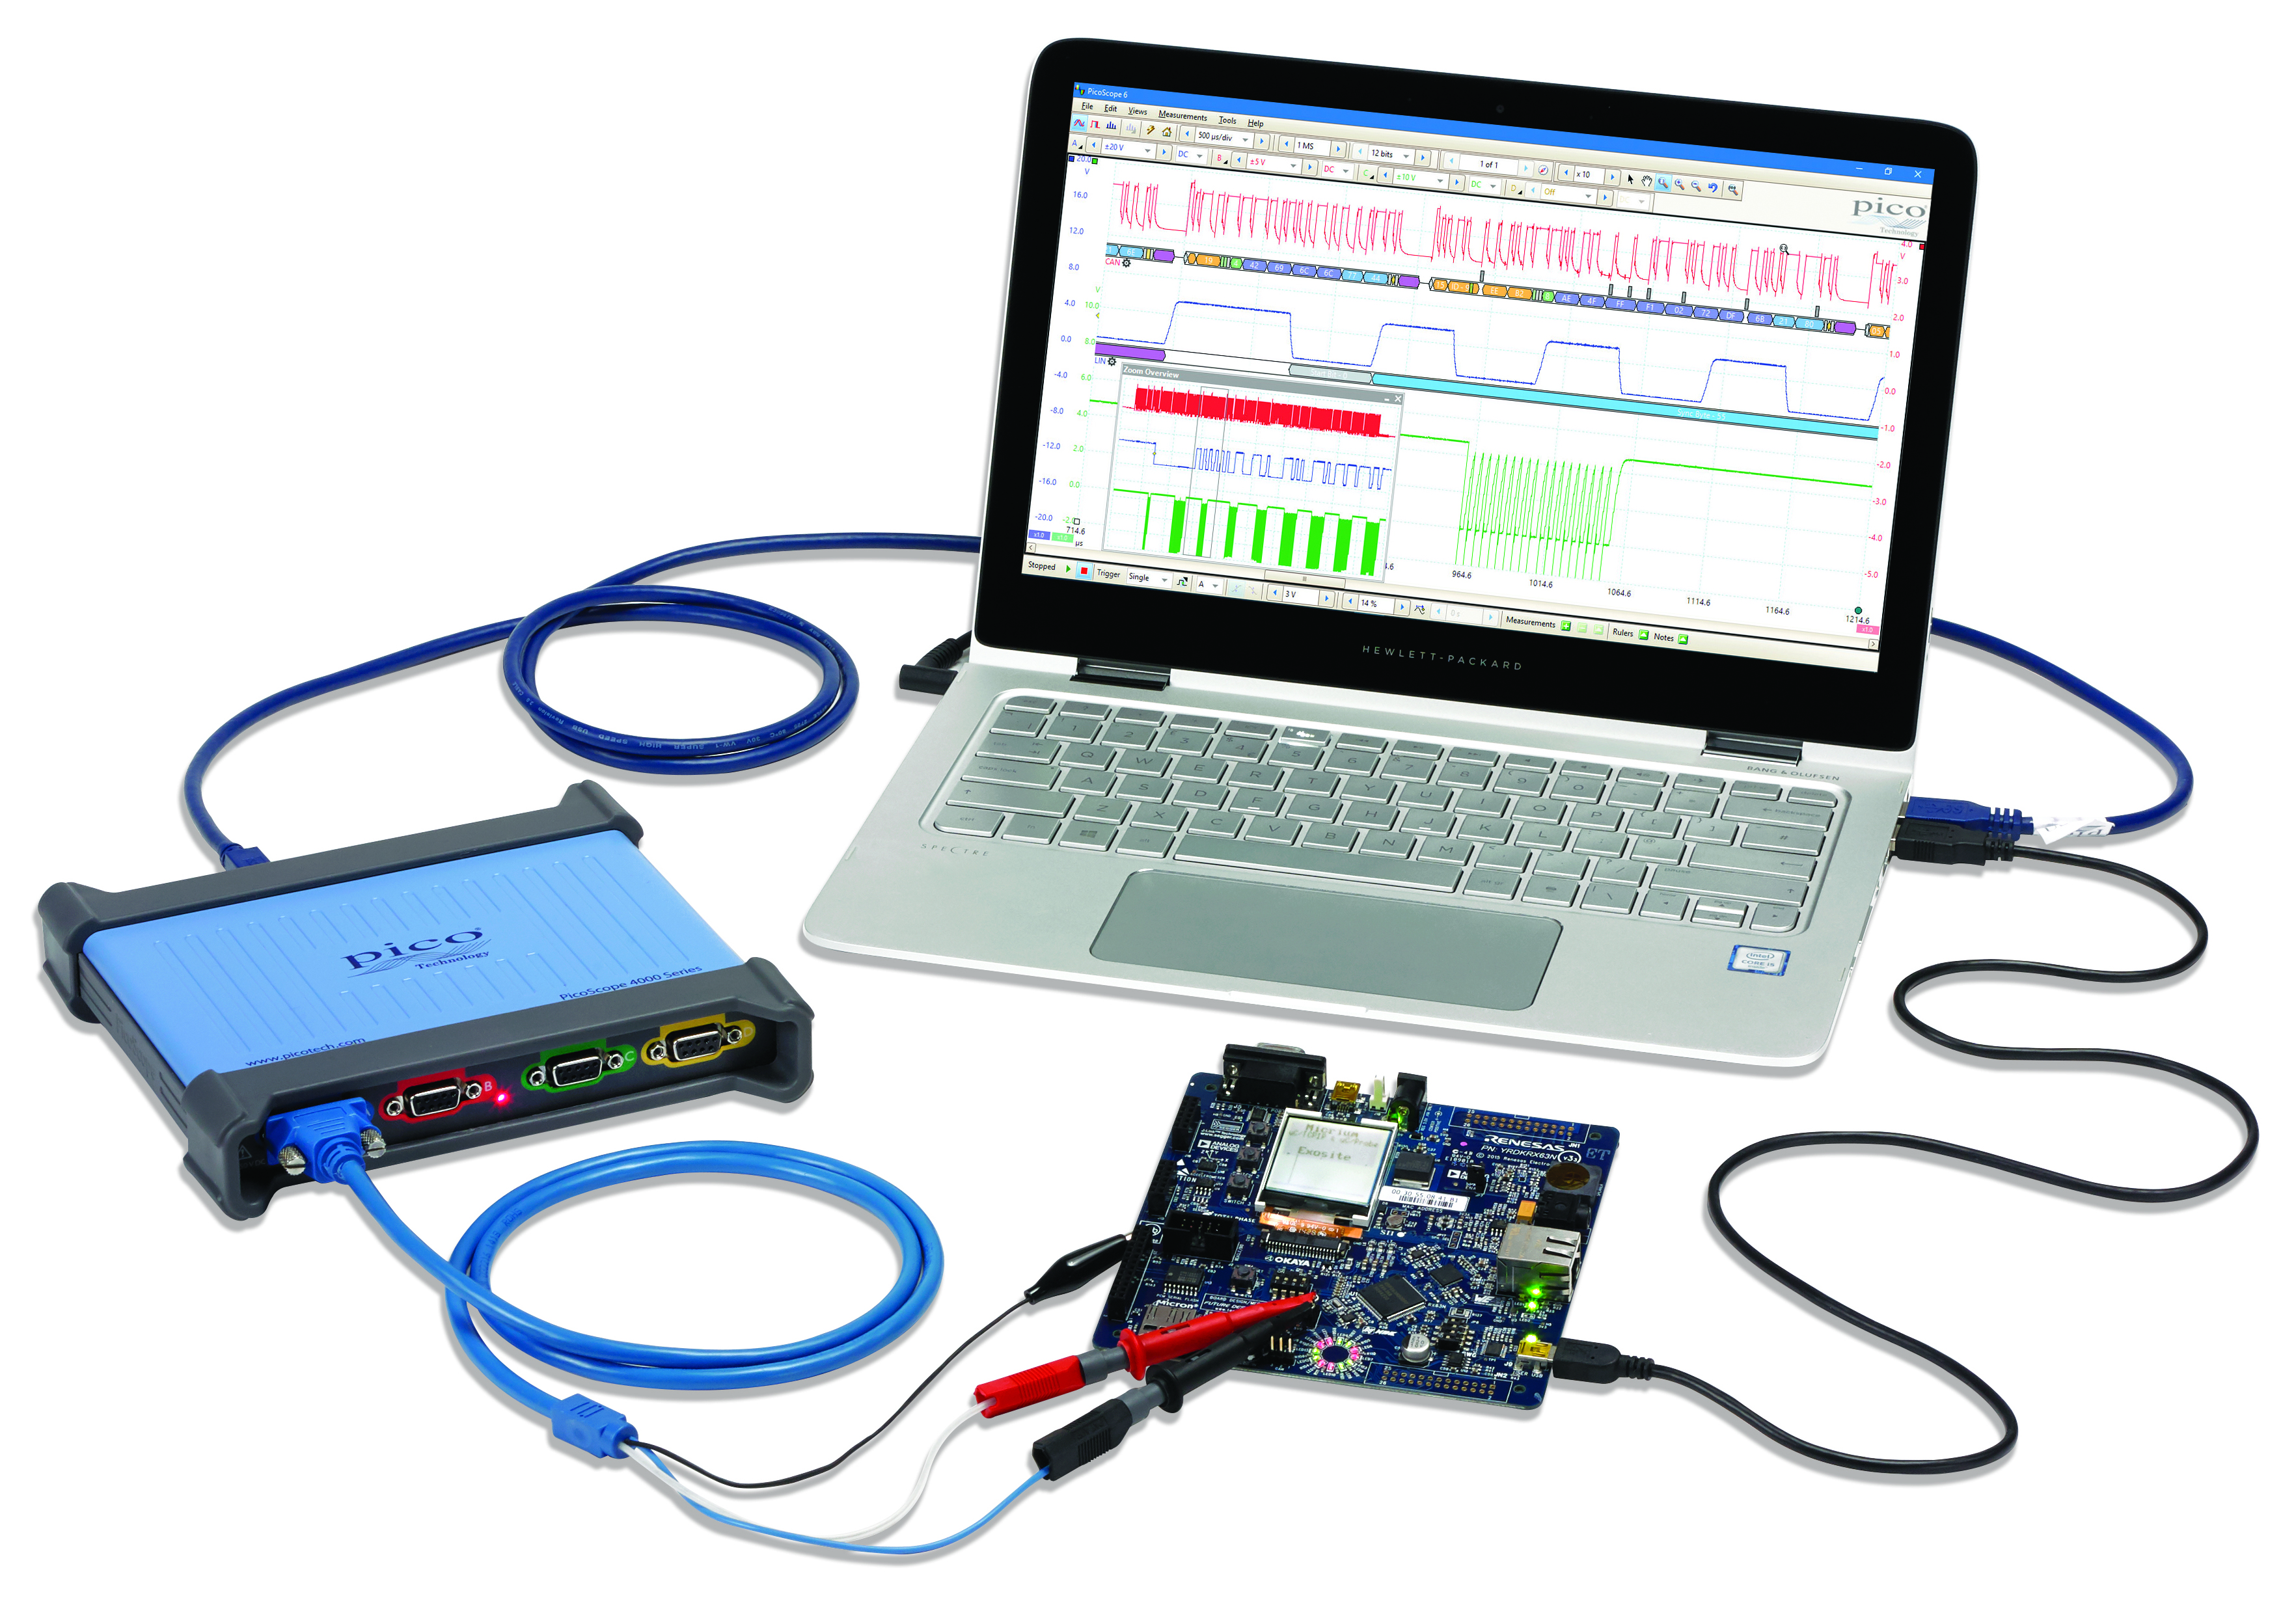 USB oscilloscope offers four differential input channels